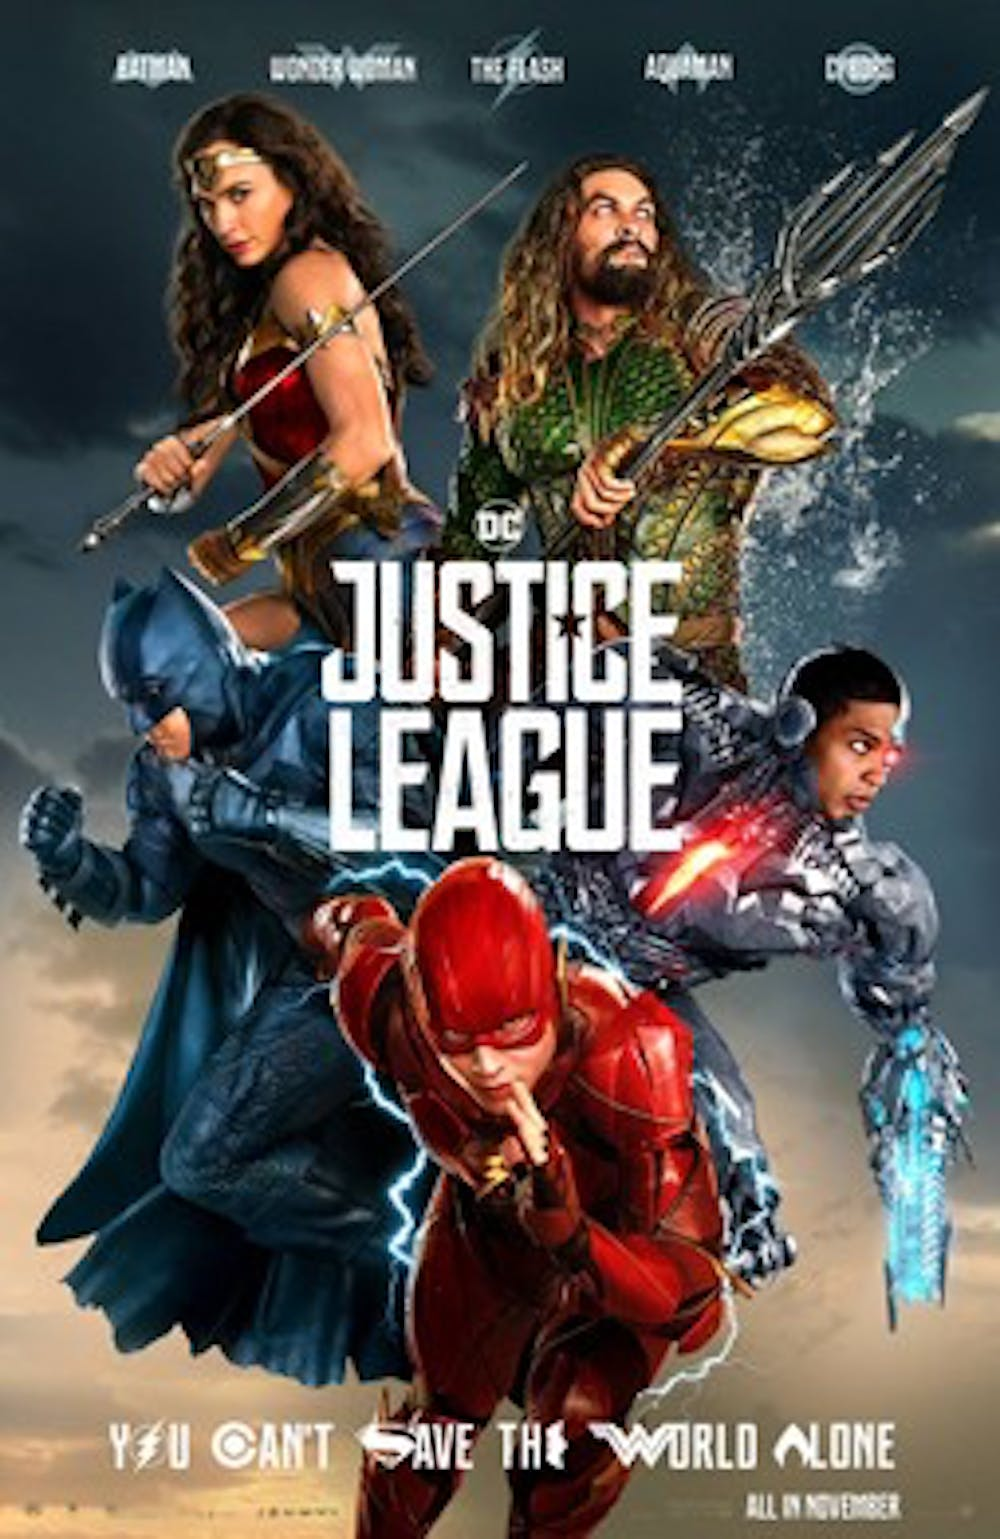 ae-justiceleague-courtesywikimediacommons